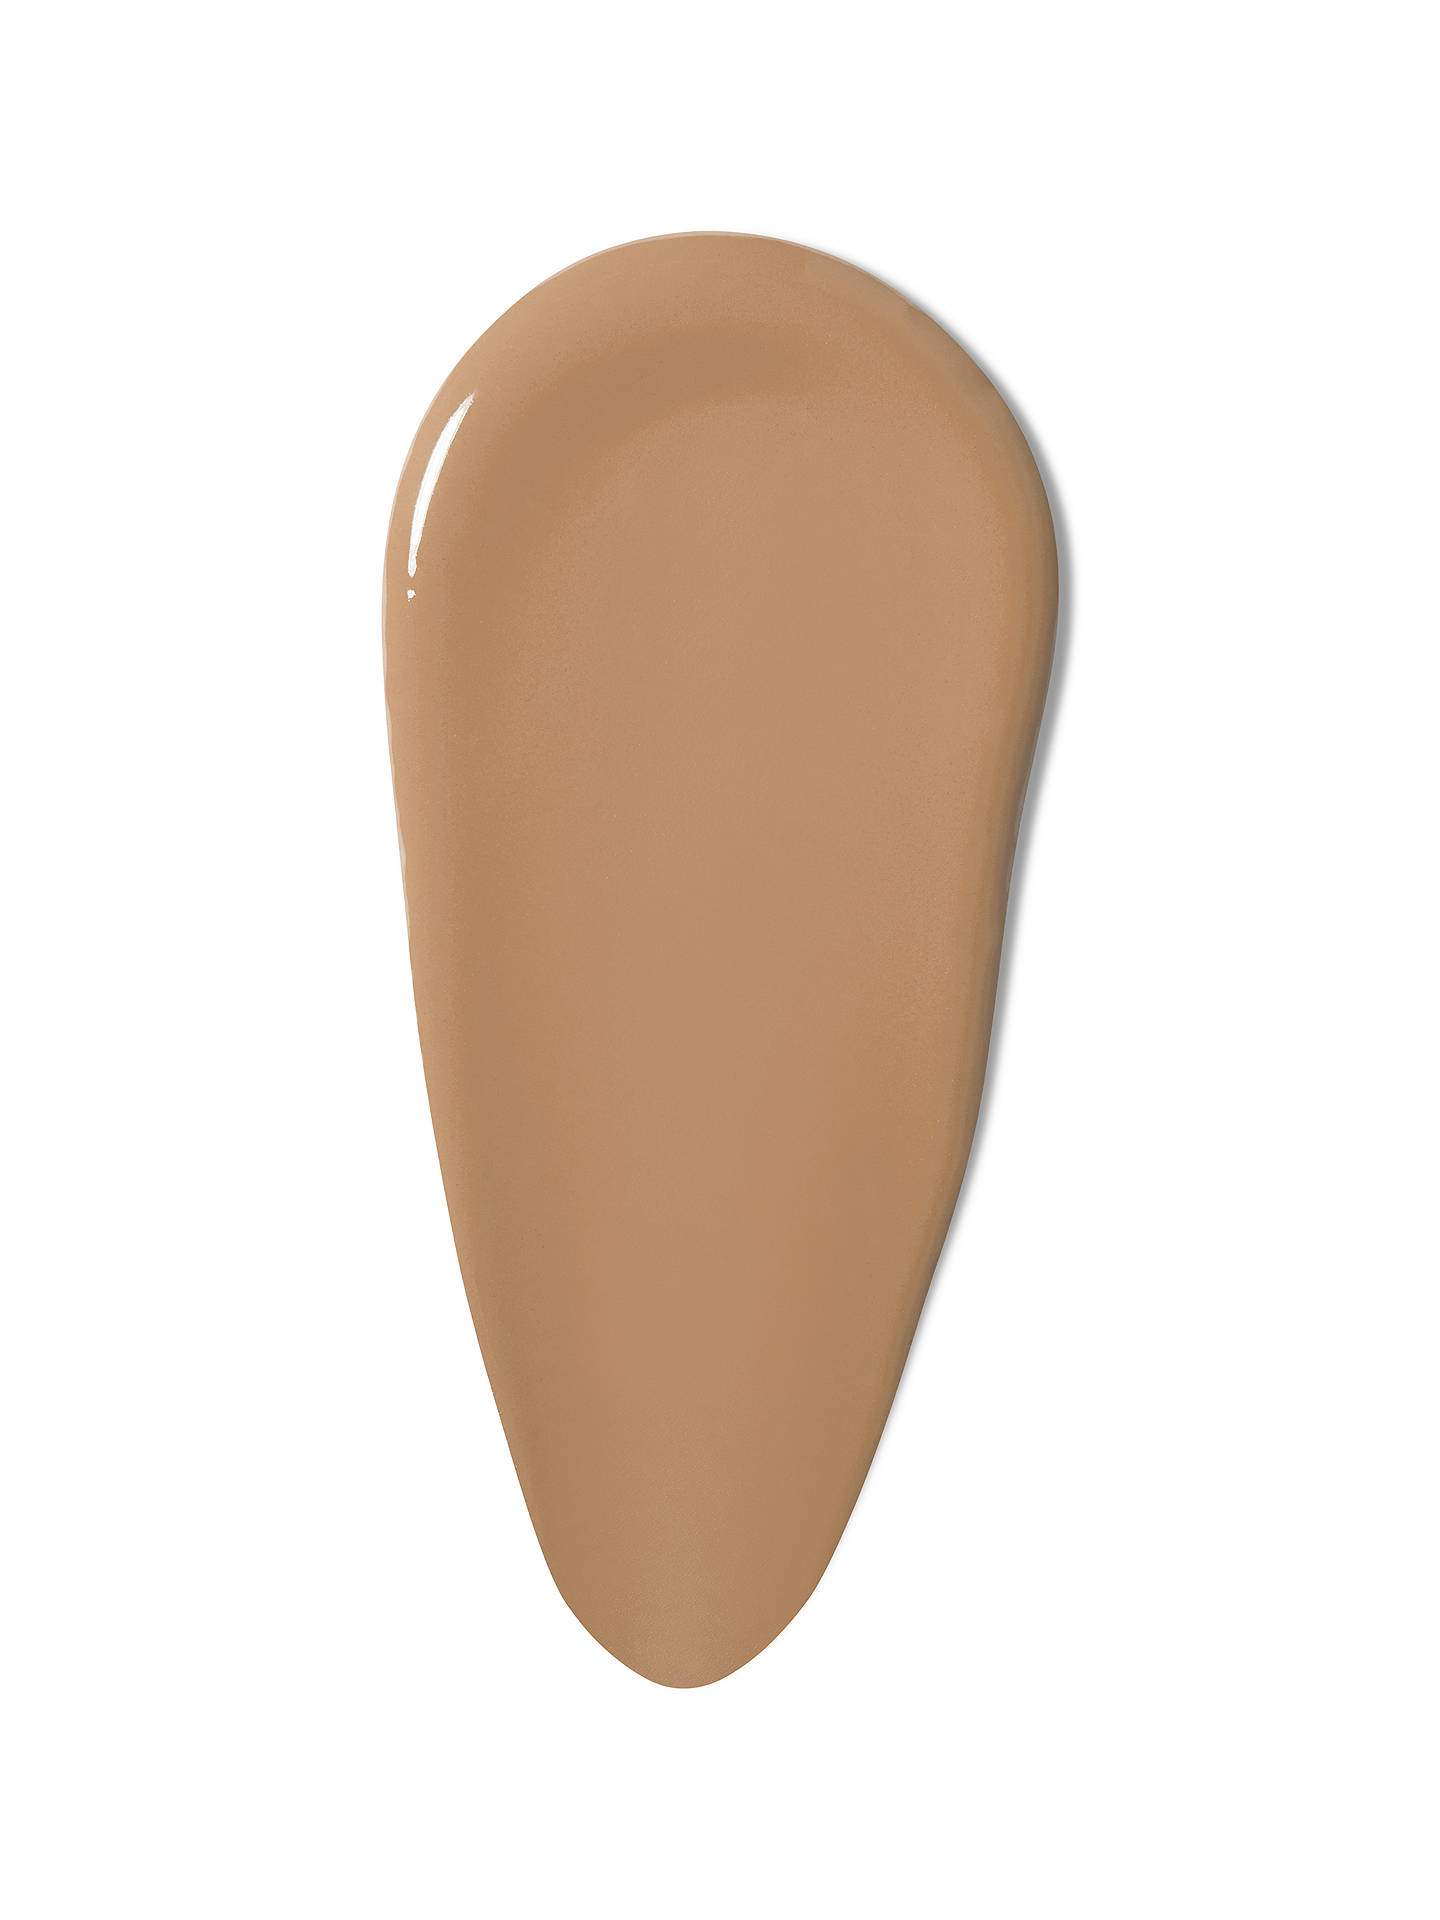 Buy Bobbi Brown Skin Foundation SPF 15, Warm Beige Online at johnlewis.com